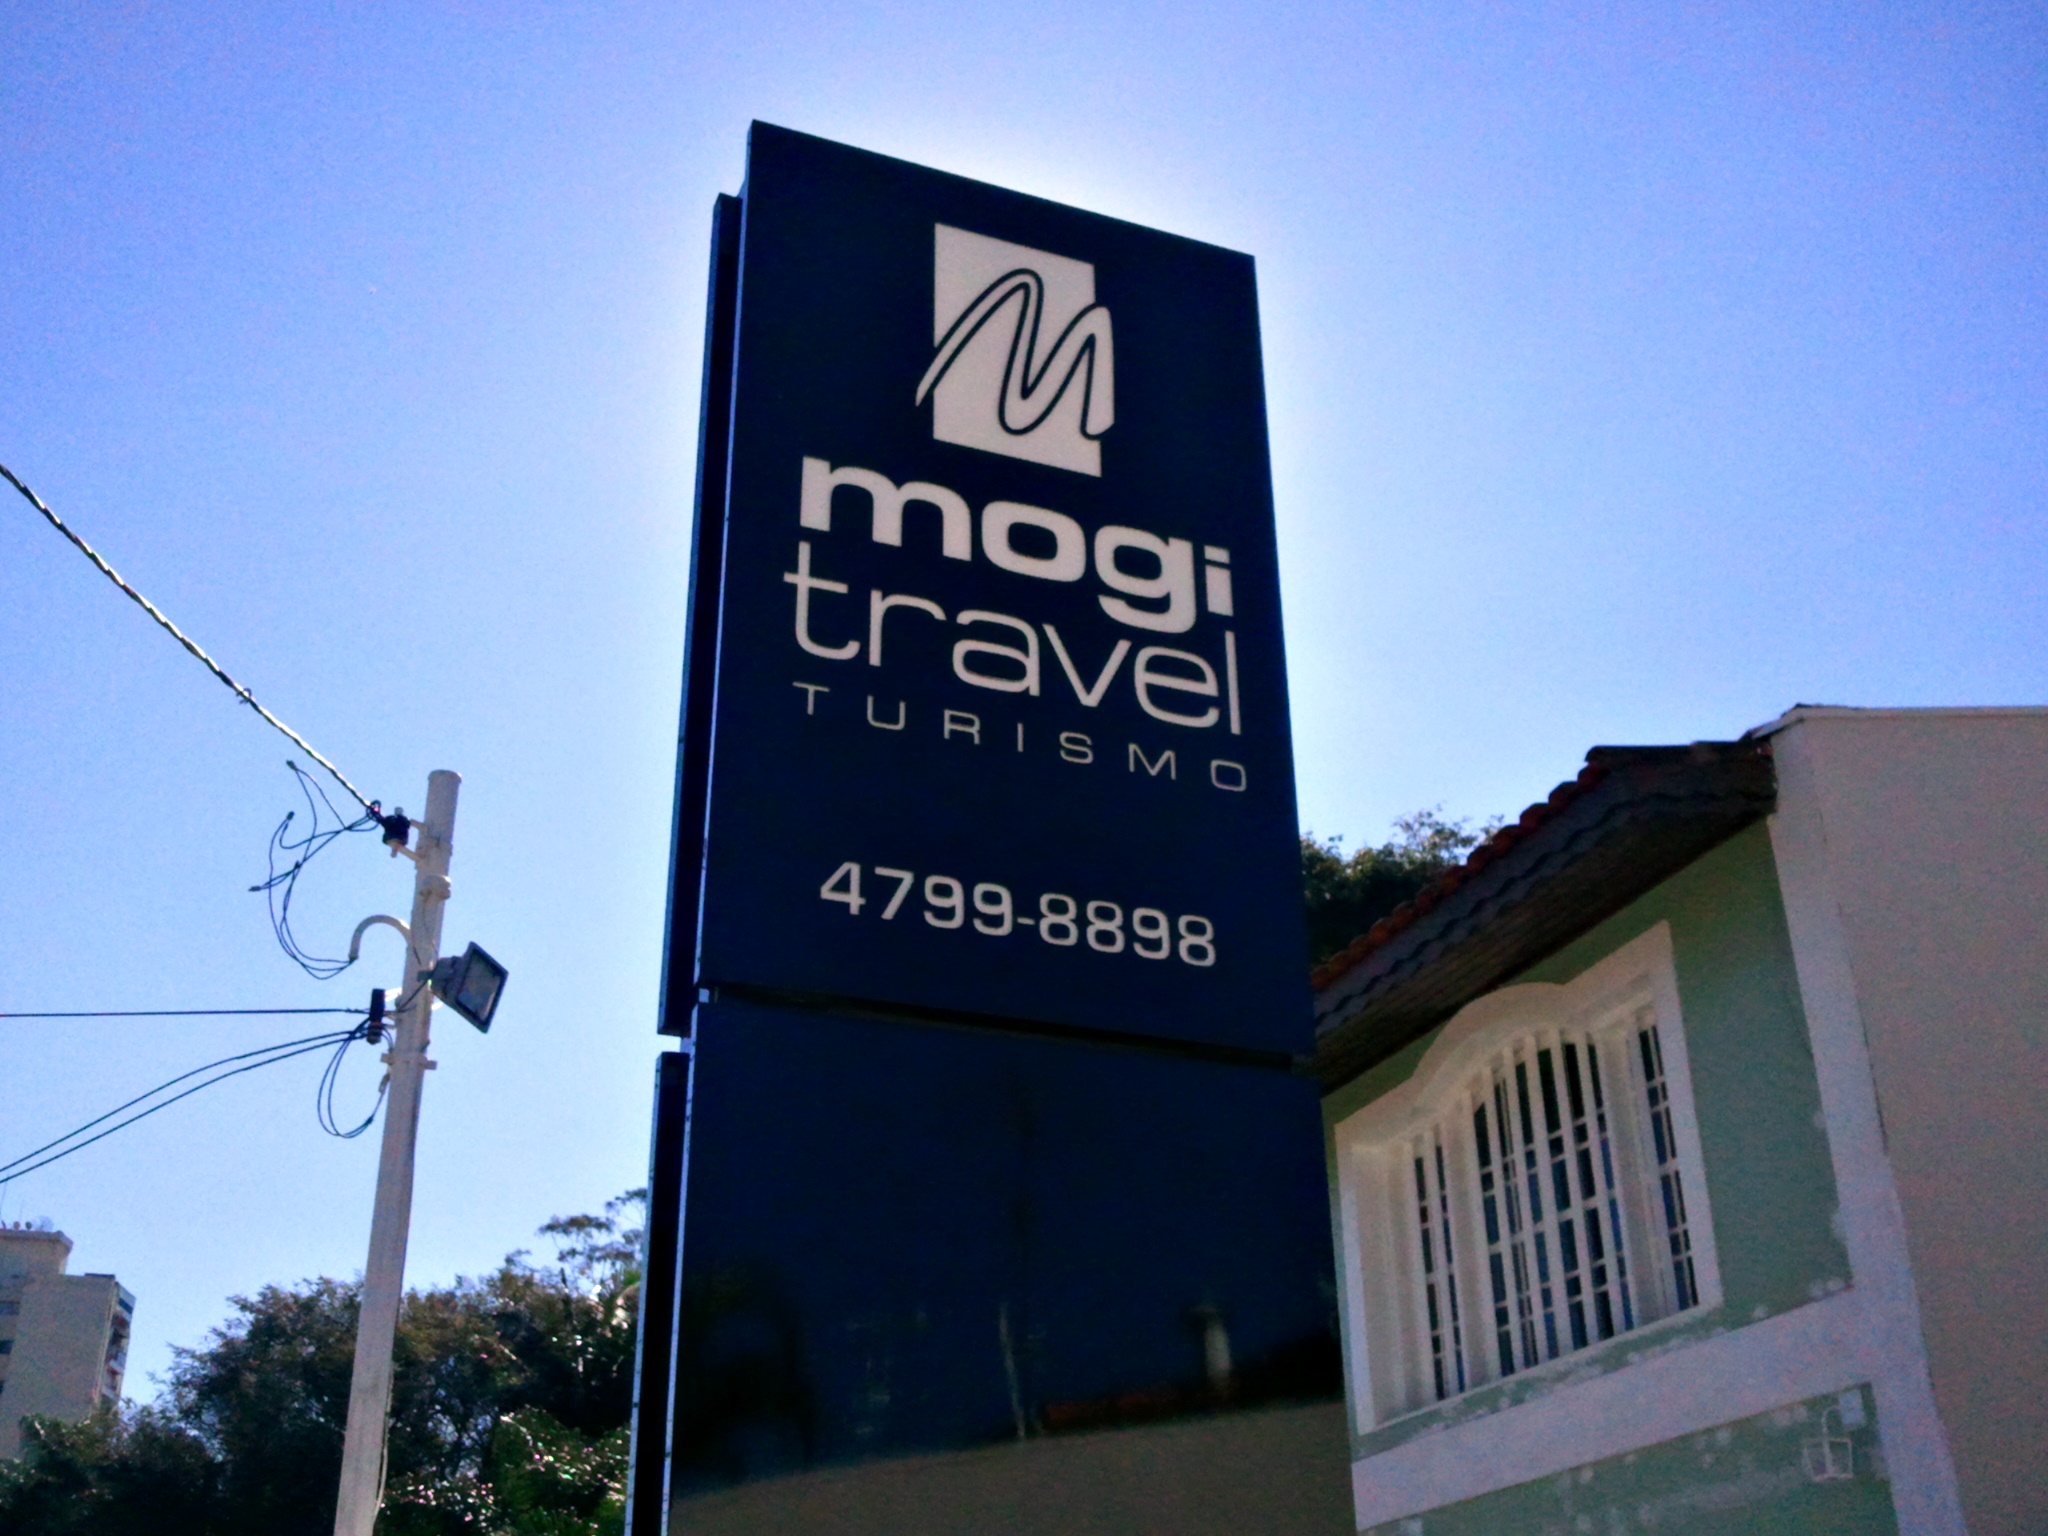 MOGI TRAVEL